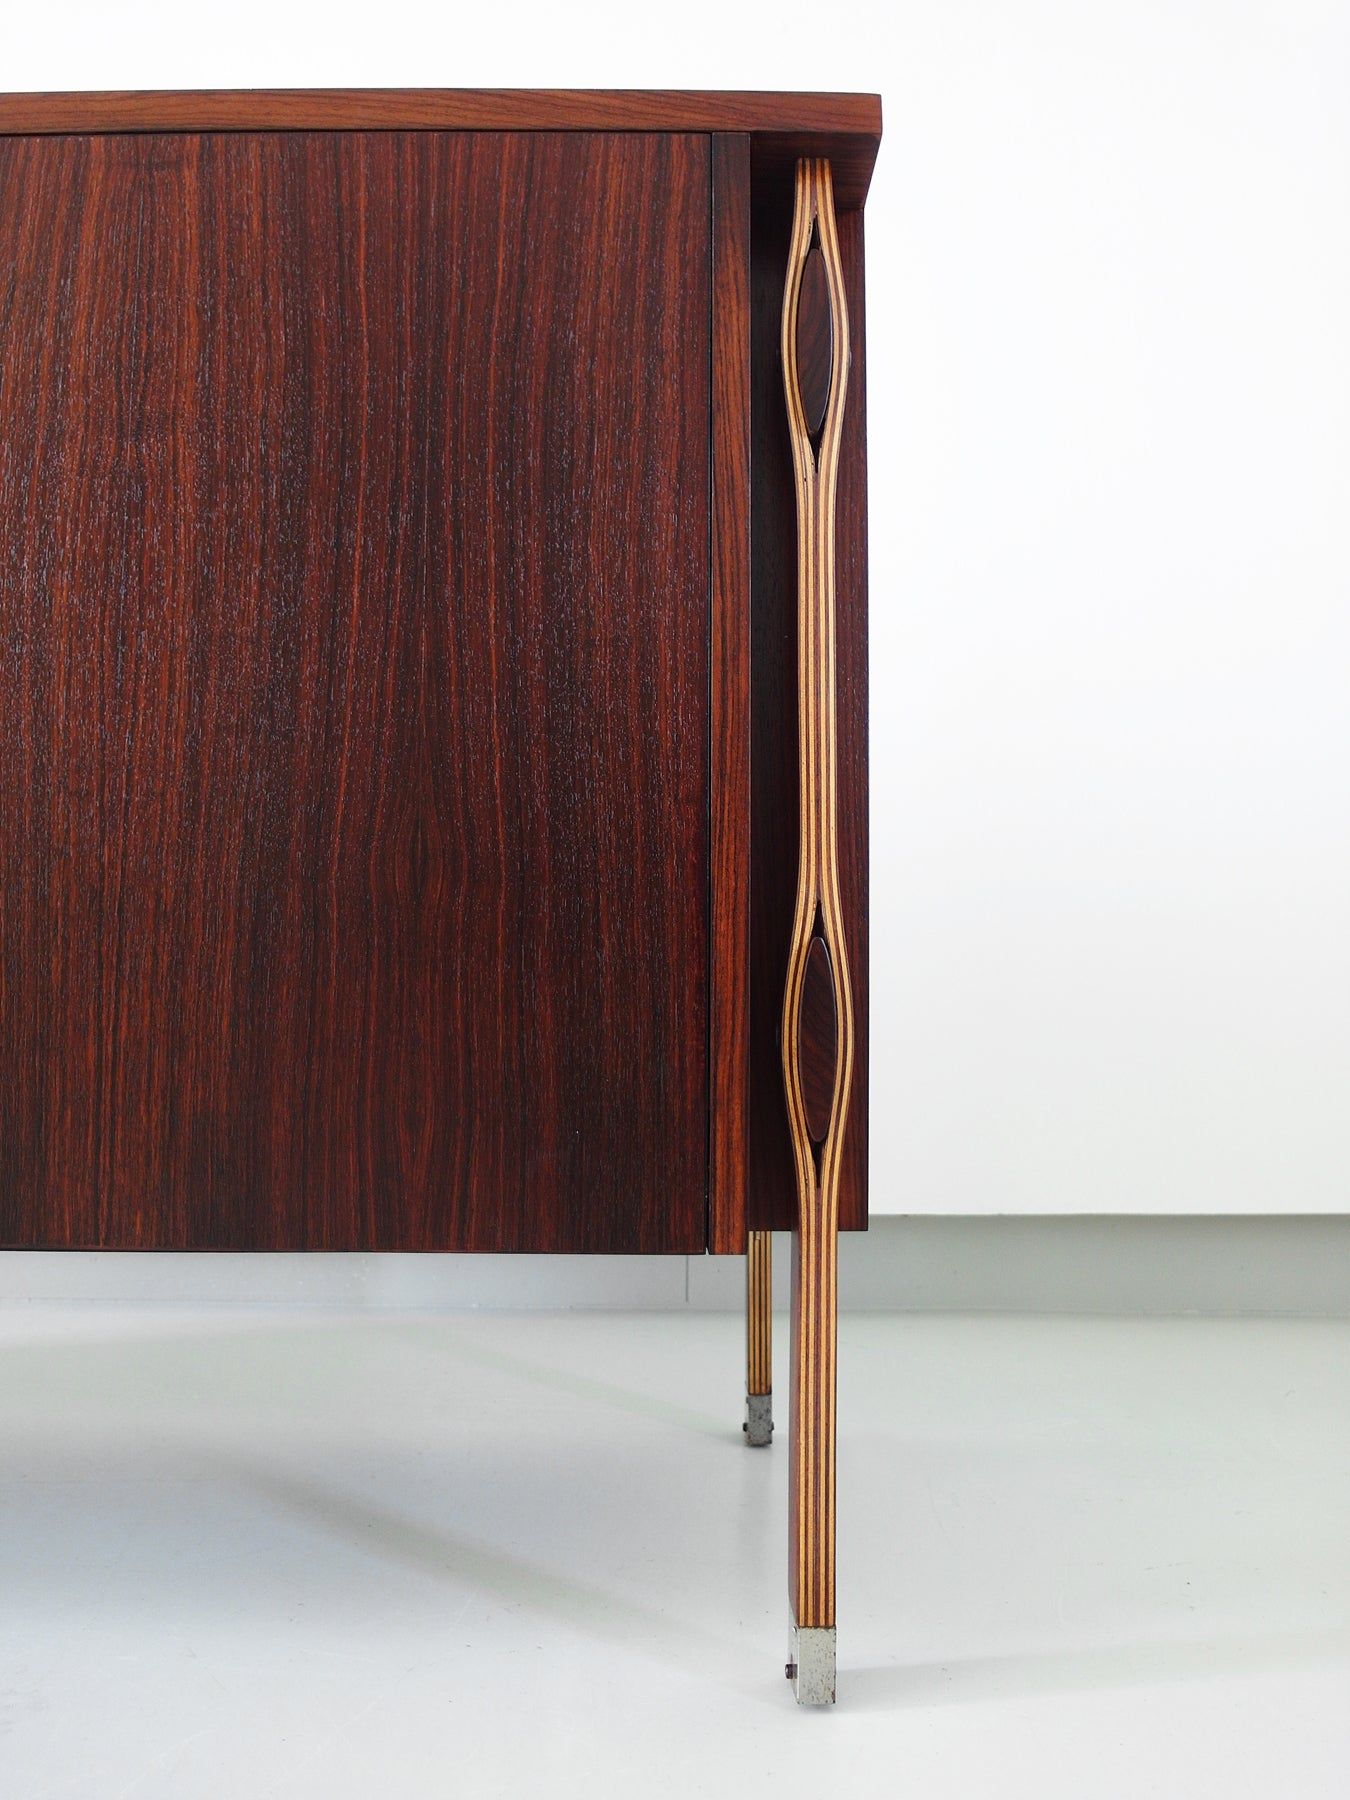 Ico And Luisa Parisi Rosewood Taormina Credenza For Mim Roma,